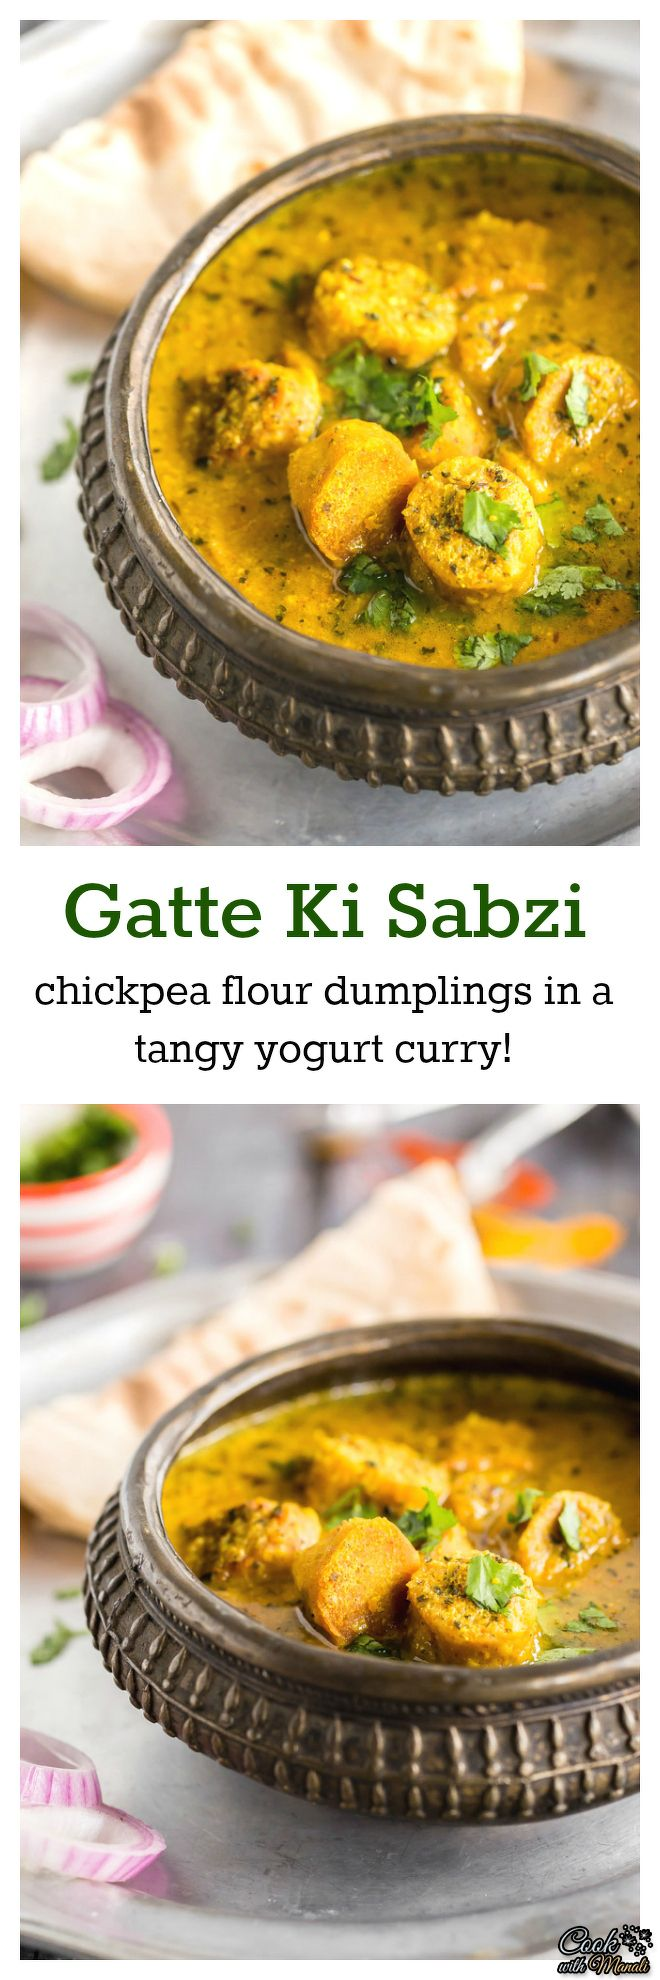 An traditional dish from the state of Rajasthan – chickpea flour dumplings are boiled and then simmered in a yogurt based tangy curry. Gatte ki sabzi tastes great with roti or plain rice! A great alternative for those days when you have no veggies in your refrigerator. #vegetarian #indian #curry